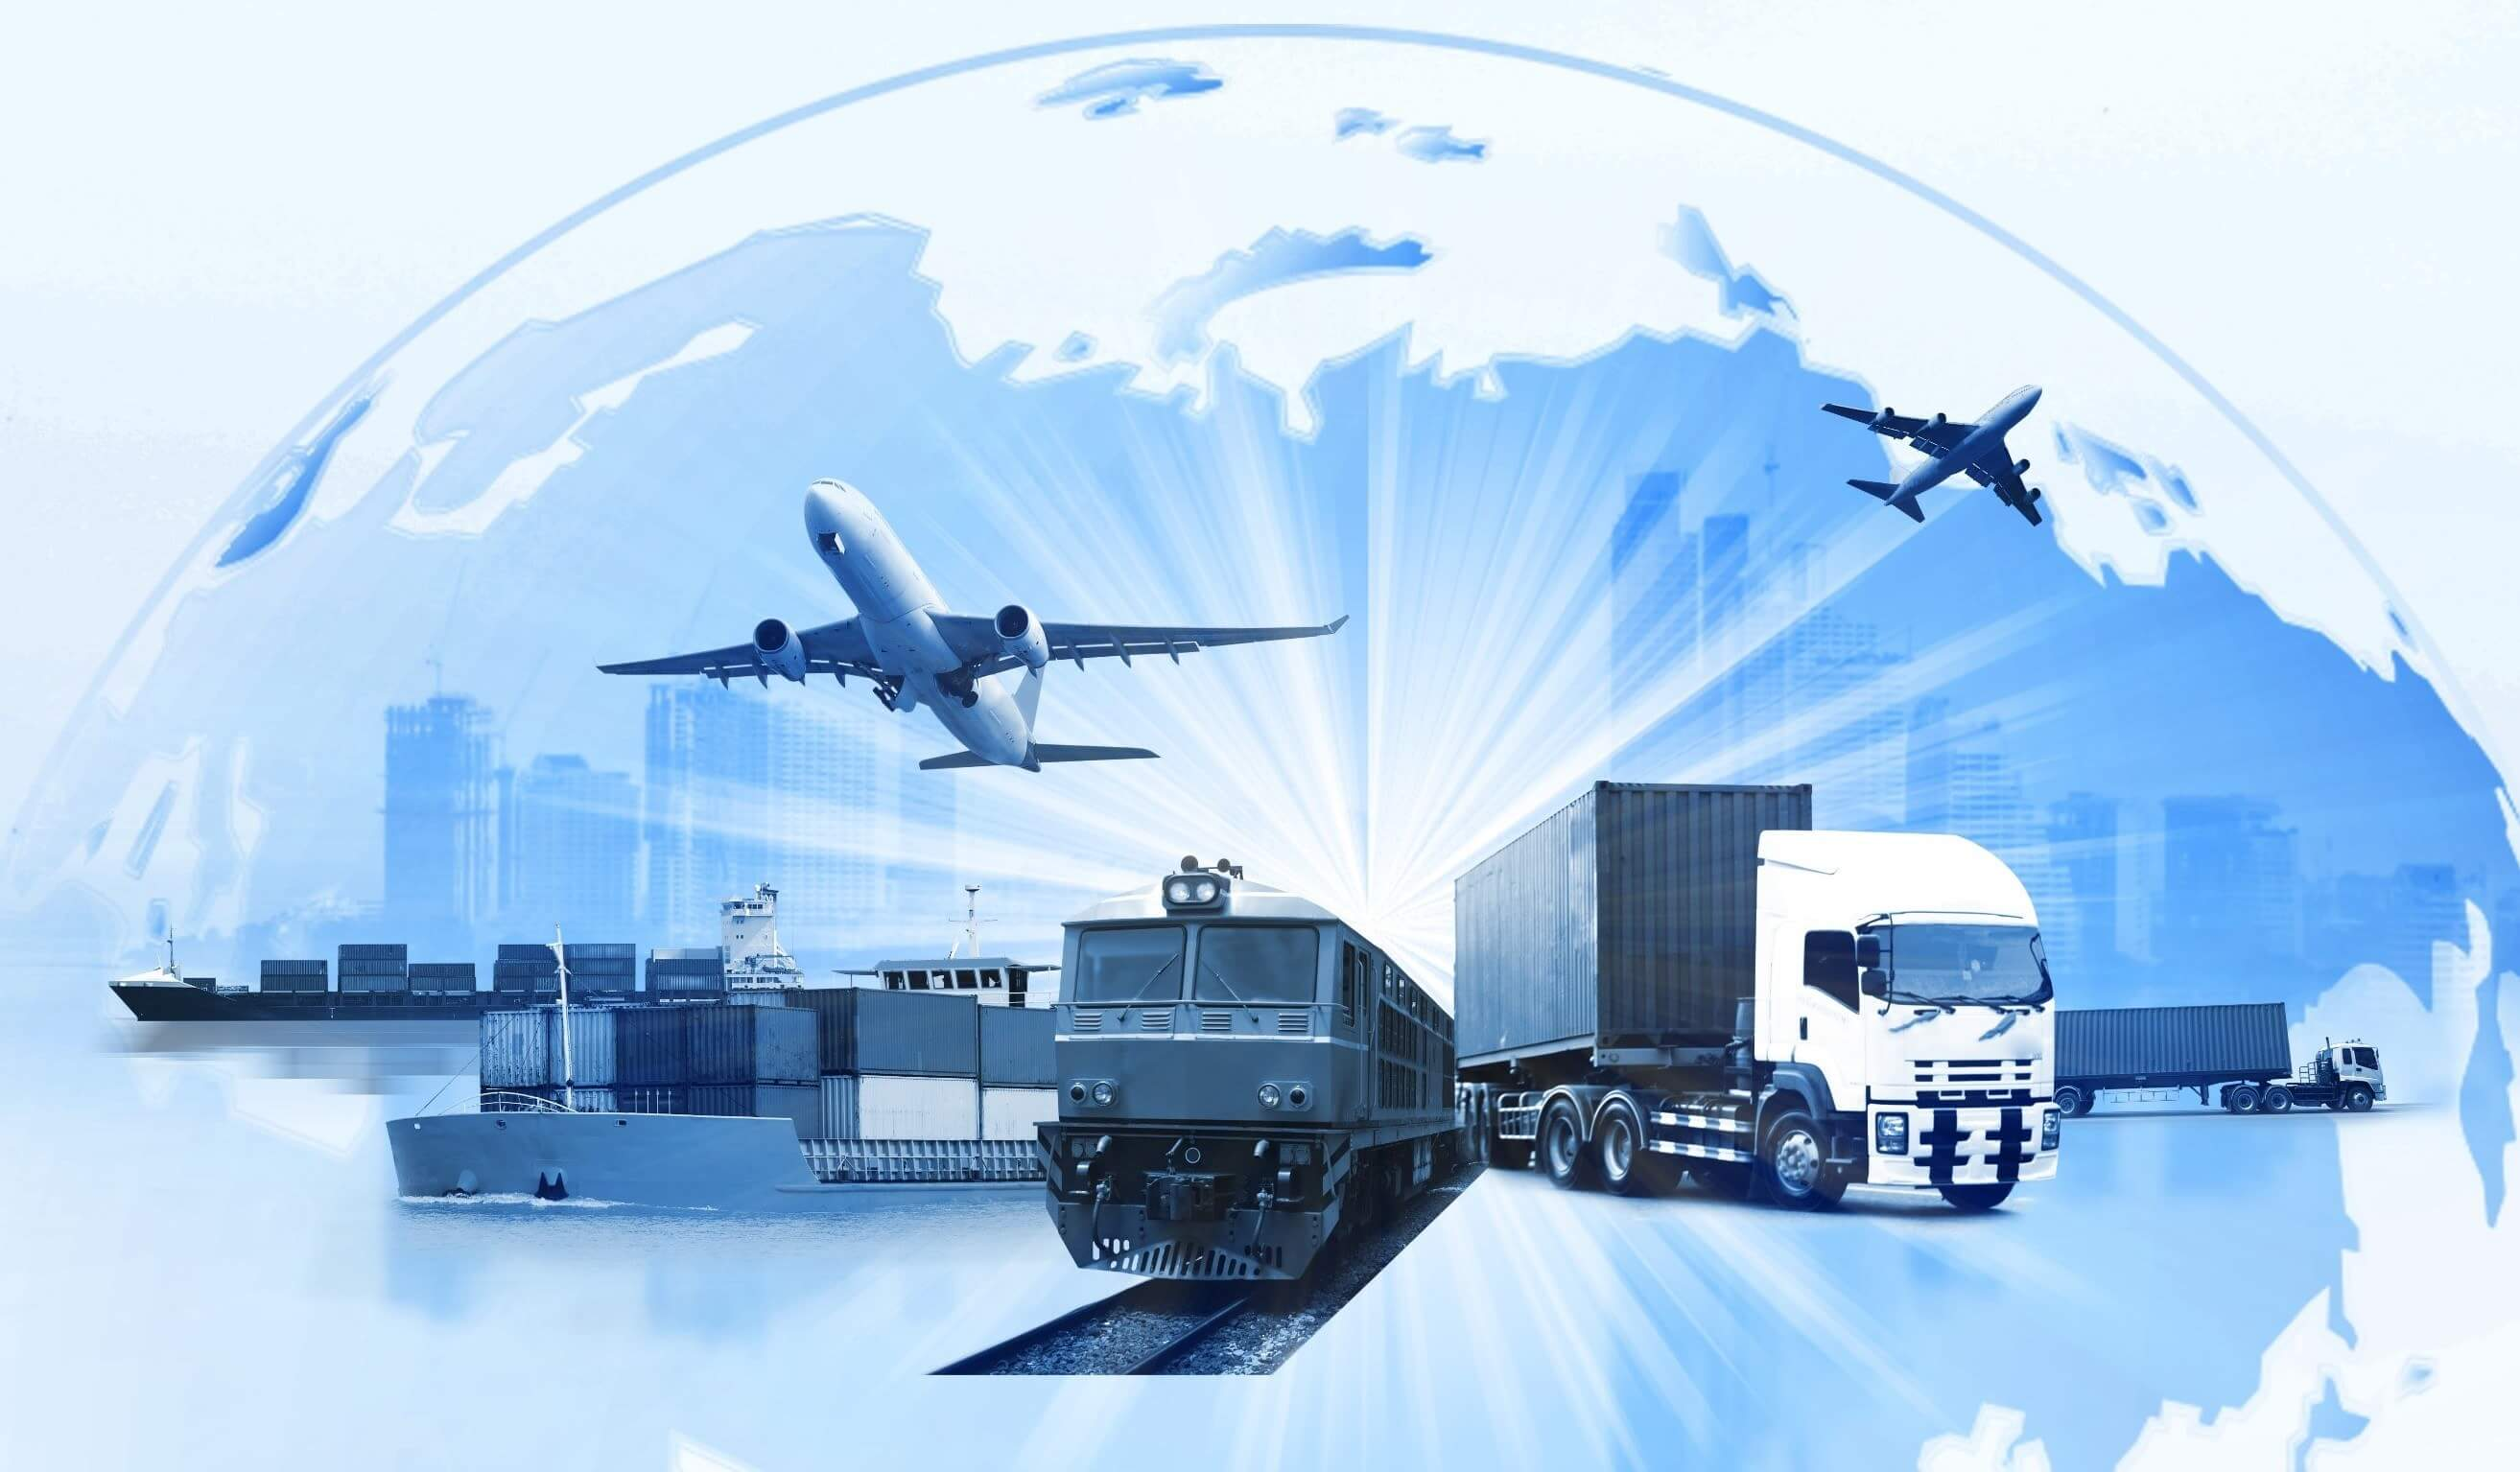 The Severe Impact of COVID-19 on Global Supply Chains